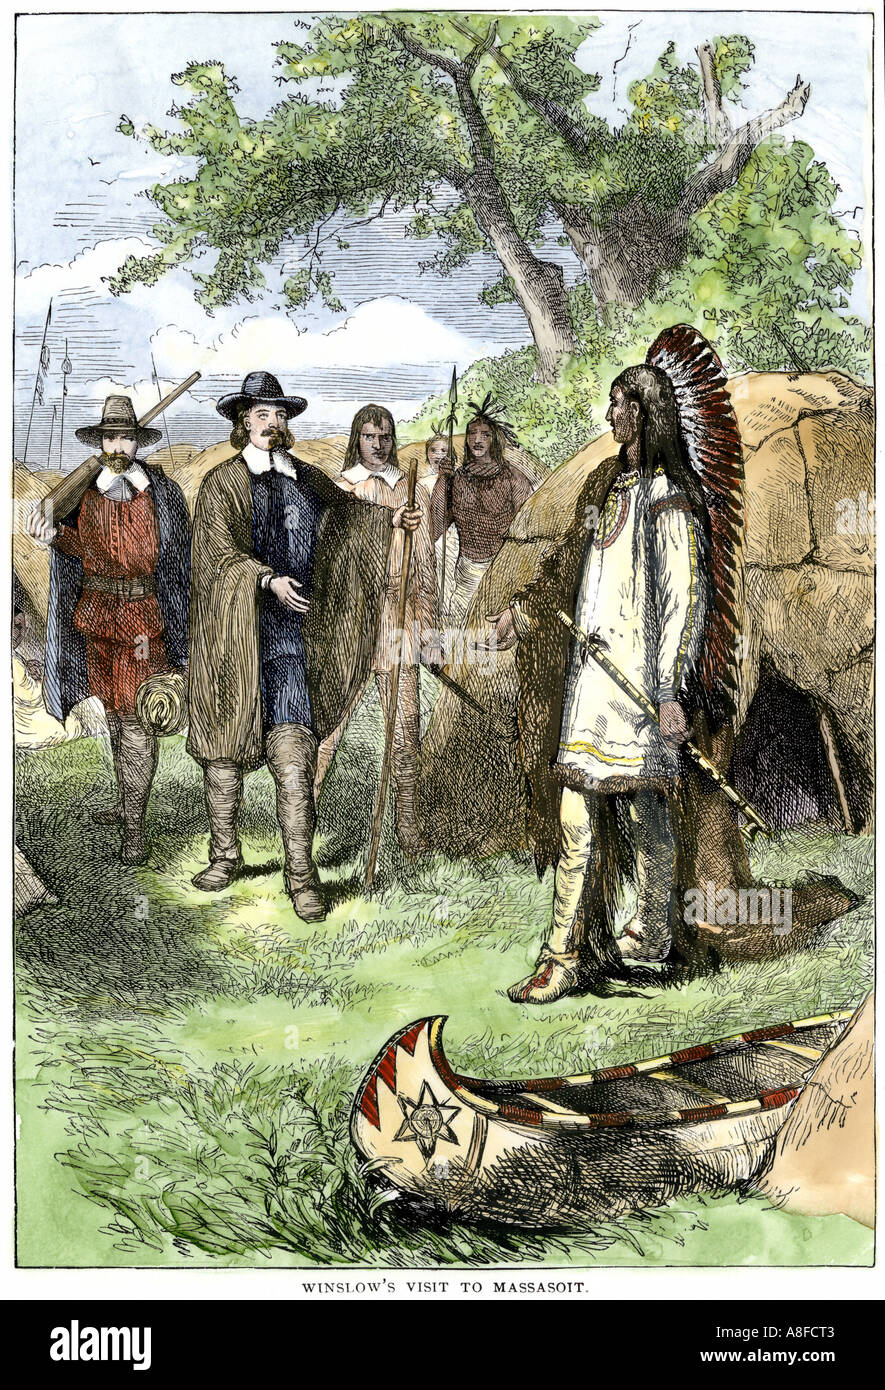 Wampanoag Indian Chief Massasoit visited by Governor Edward Winslow Plymouth Colony 1620s. Hand-colored woodcut - Stock Image